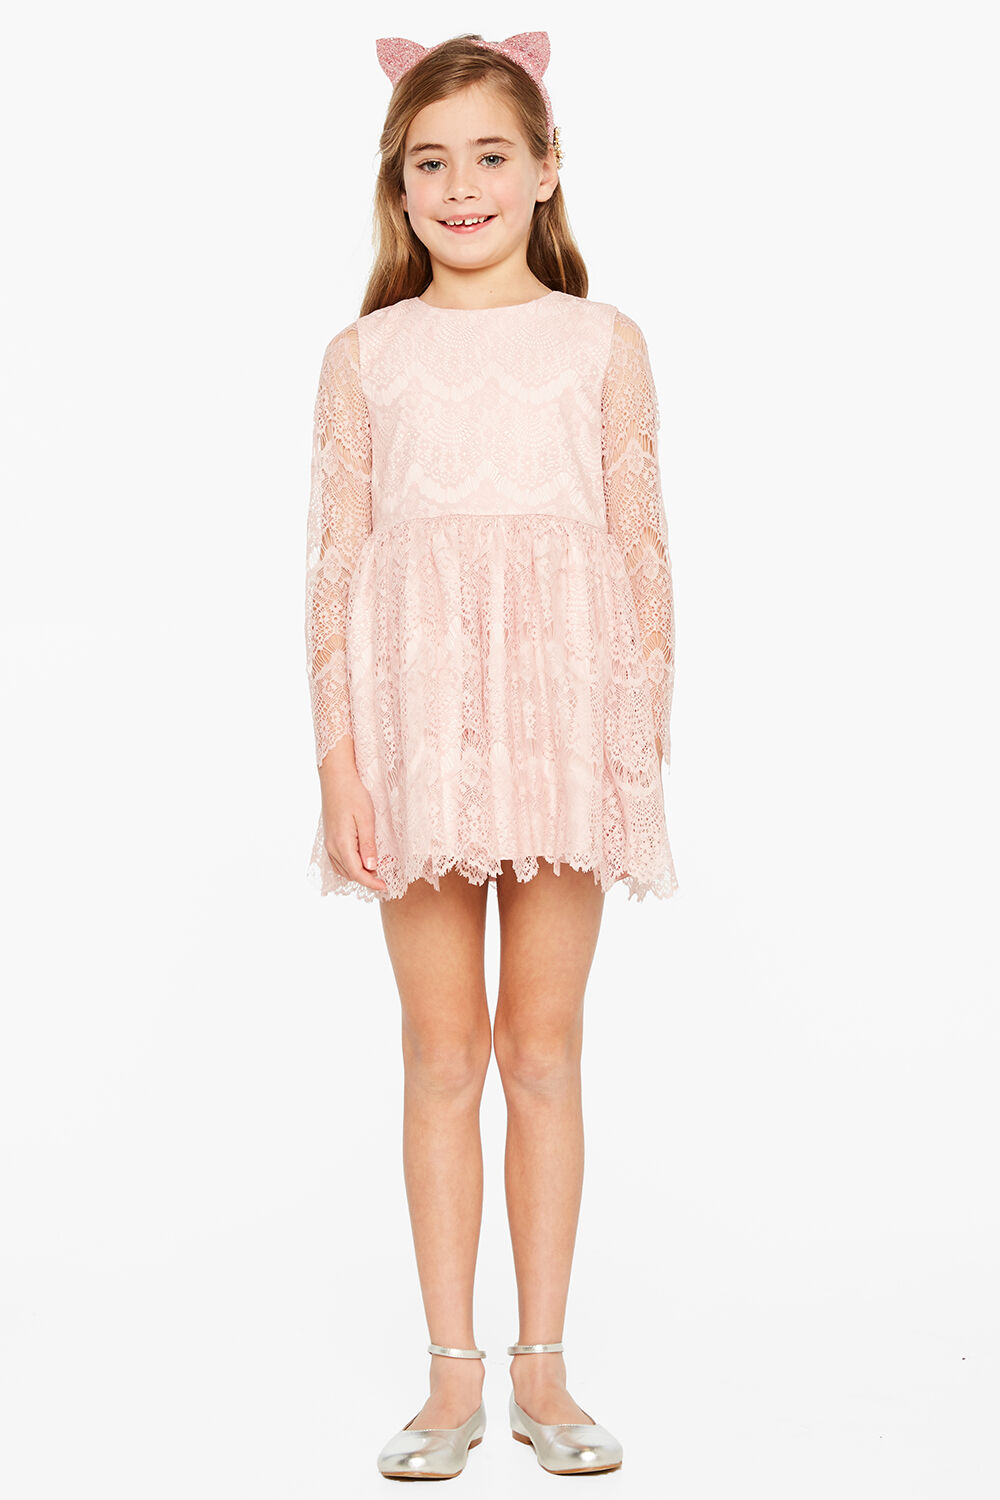 JUNIOR GIRL GERTRUDE LACE DRESS in colour TUSCANY